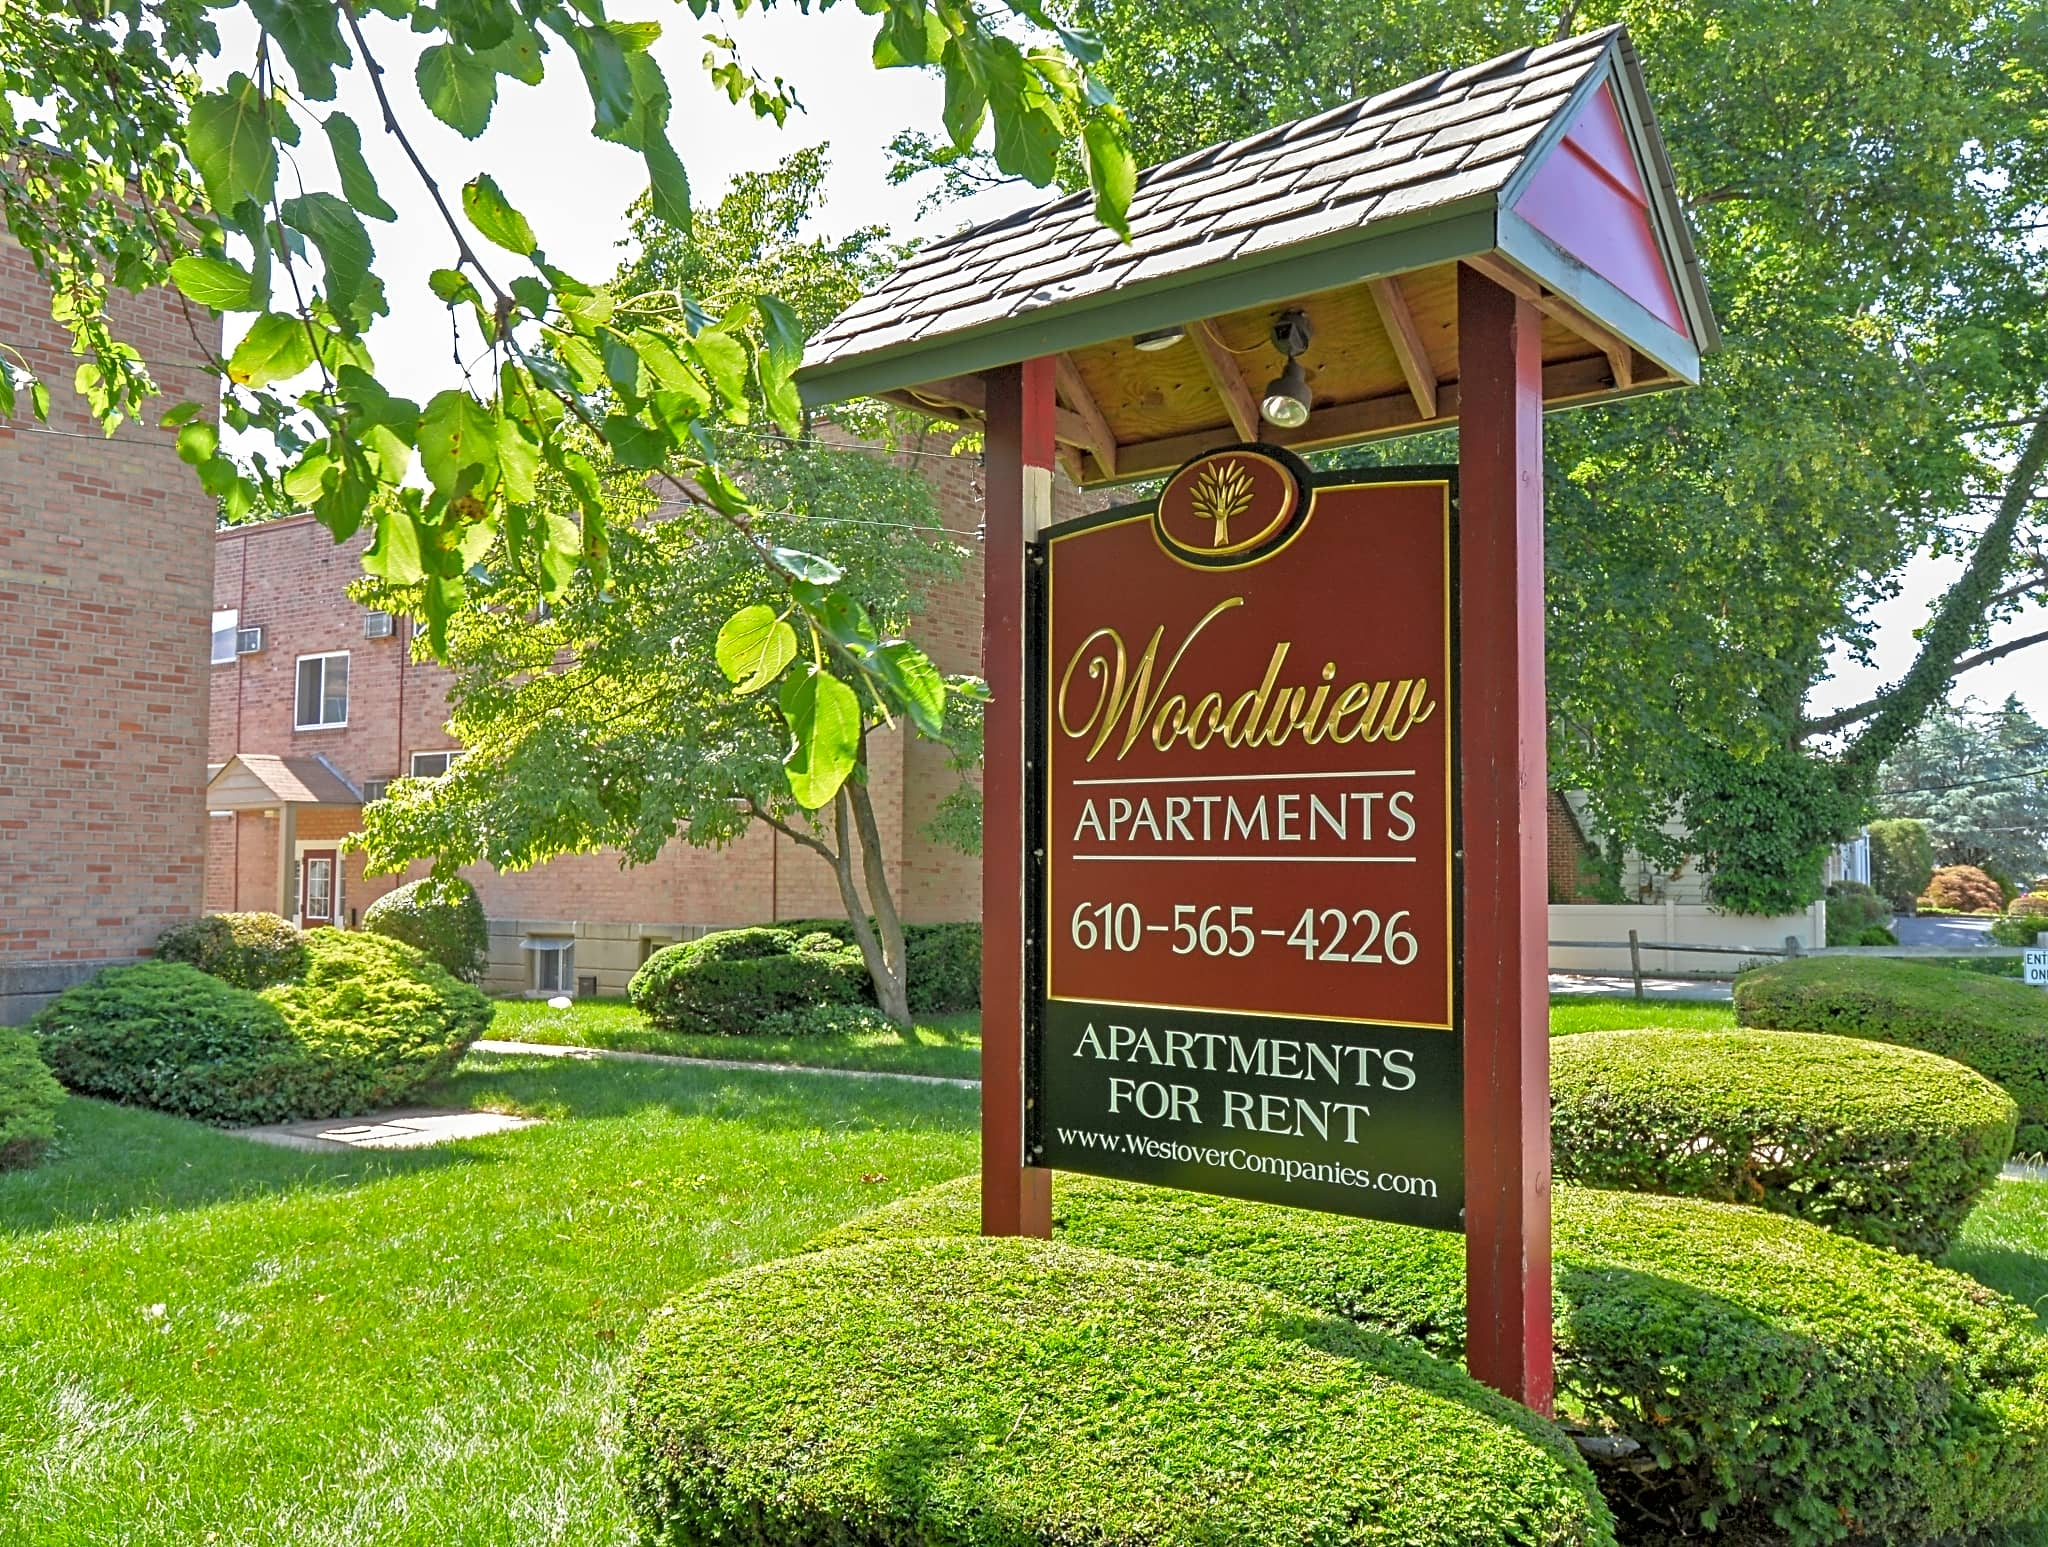 Apartments Near Penn St Brandywine Woodview Apartments for Pennsylvania State University Brandywine Students in Media, PA